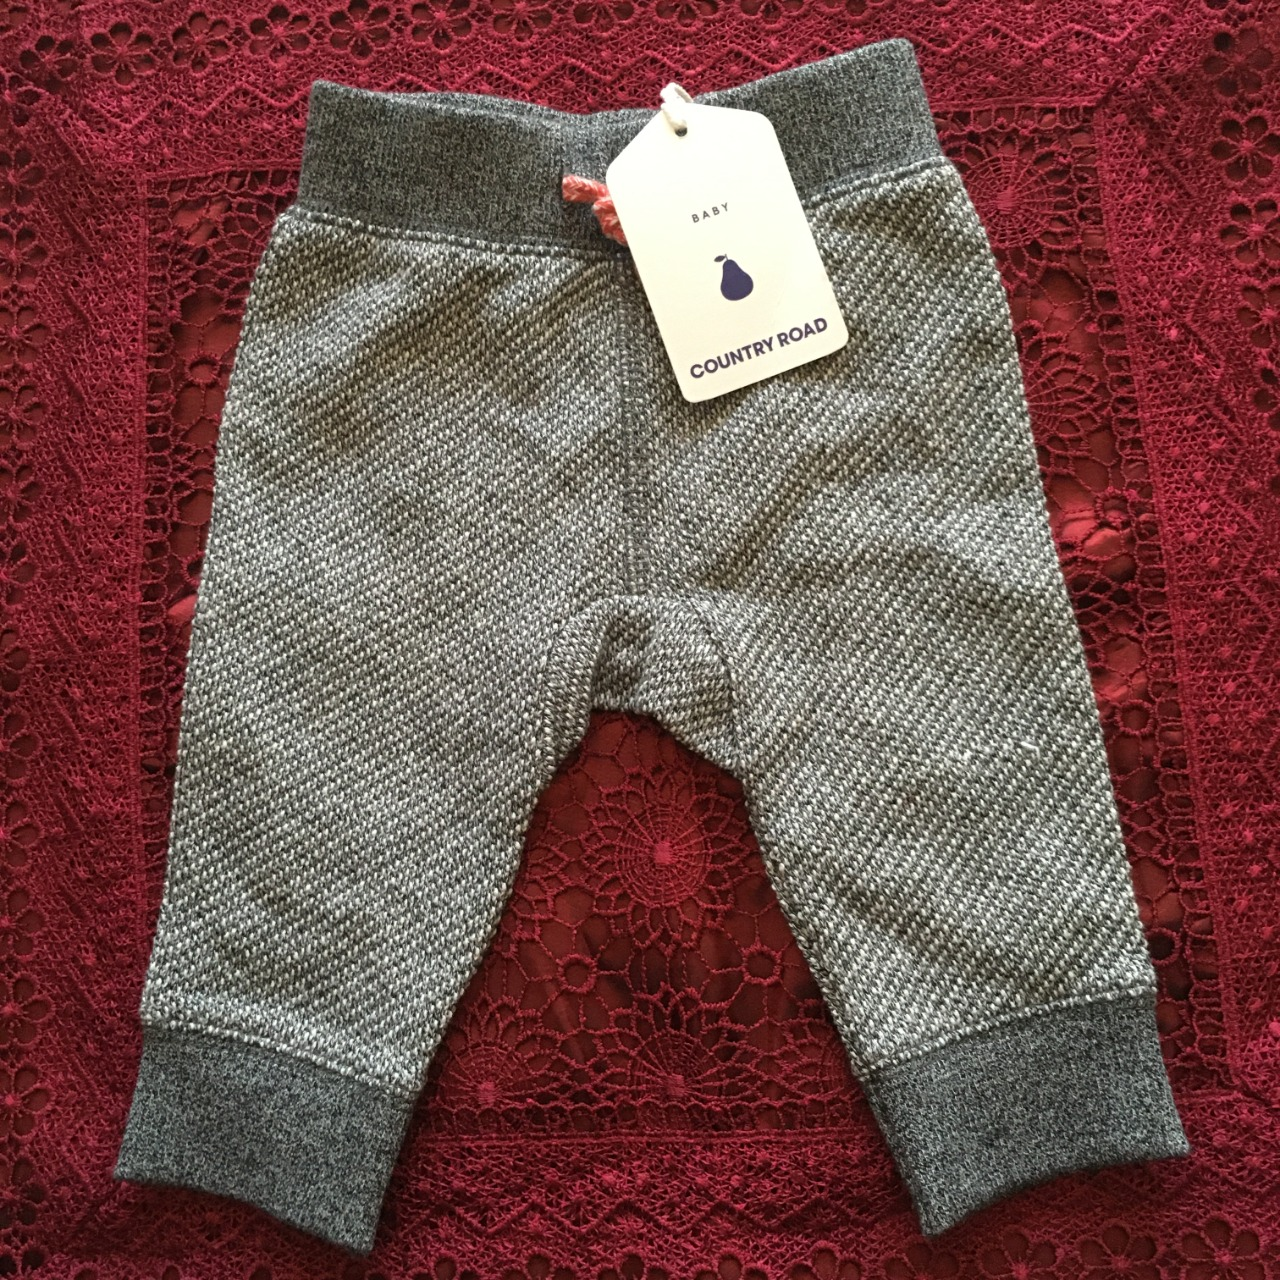 Country Road Size 0-3m Boys Speckle Sweat Pant, Grey, BNWT RRP $39.95